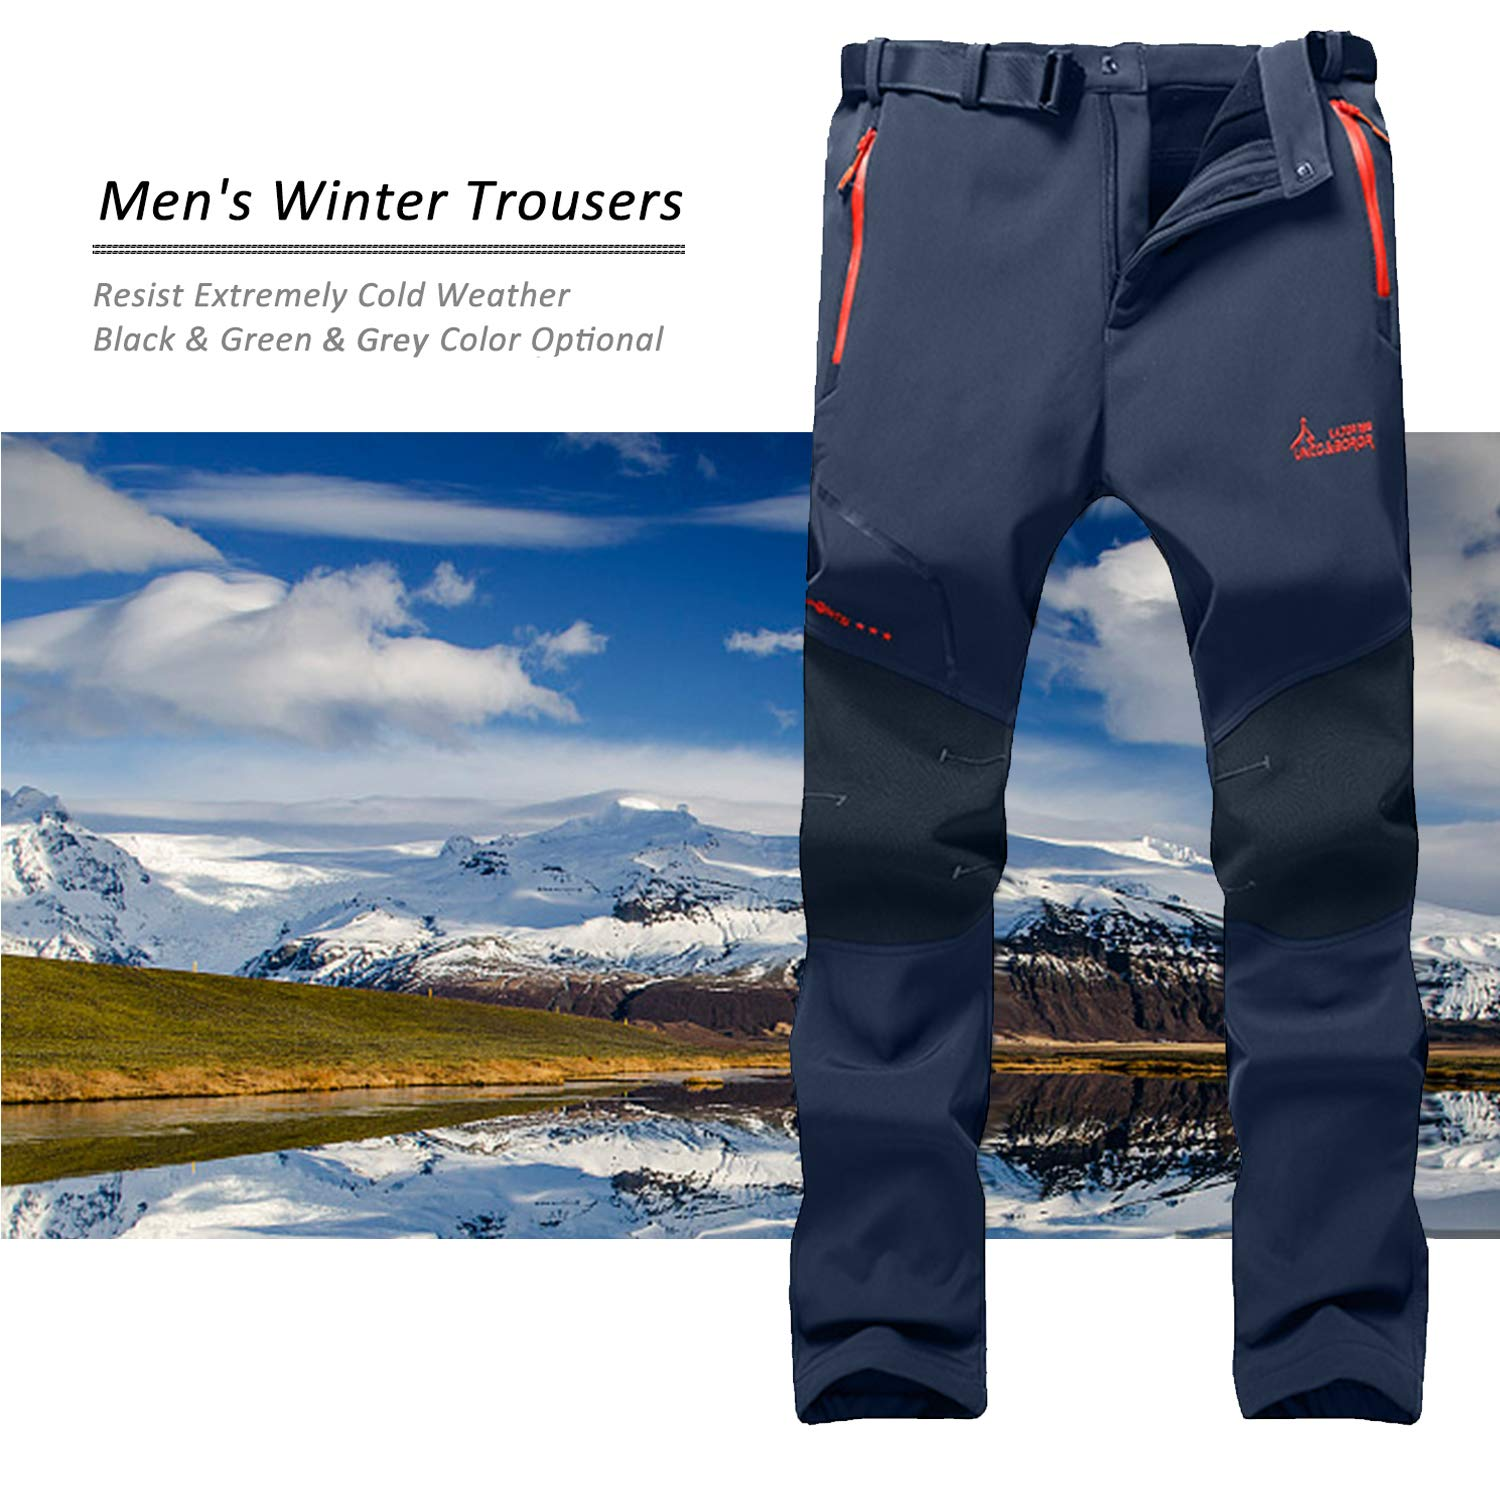 7VSTOHS Mens Outdoor Fleece Lined Winter Hiking Trousers Windproof Water-Resistant Softshell Warm Walking Trousers Casual Climbing Pants